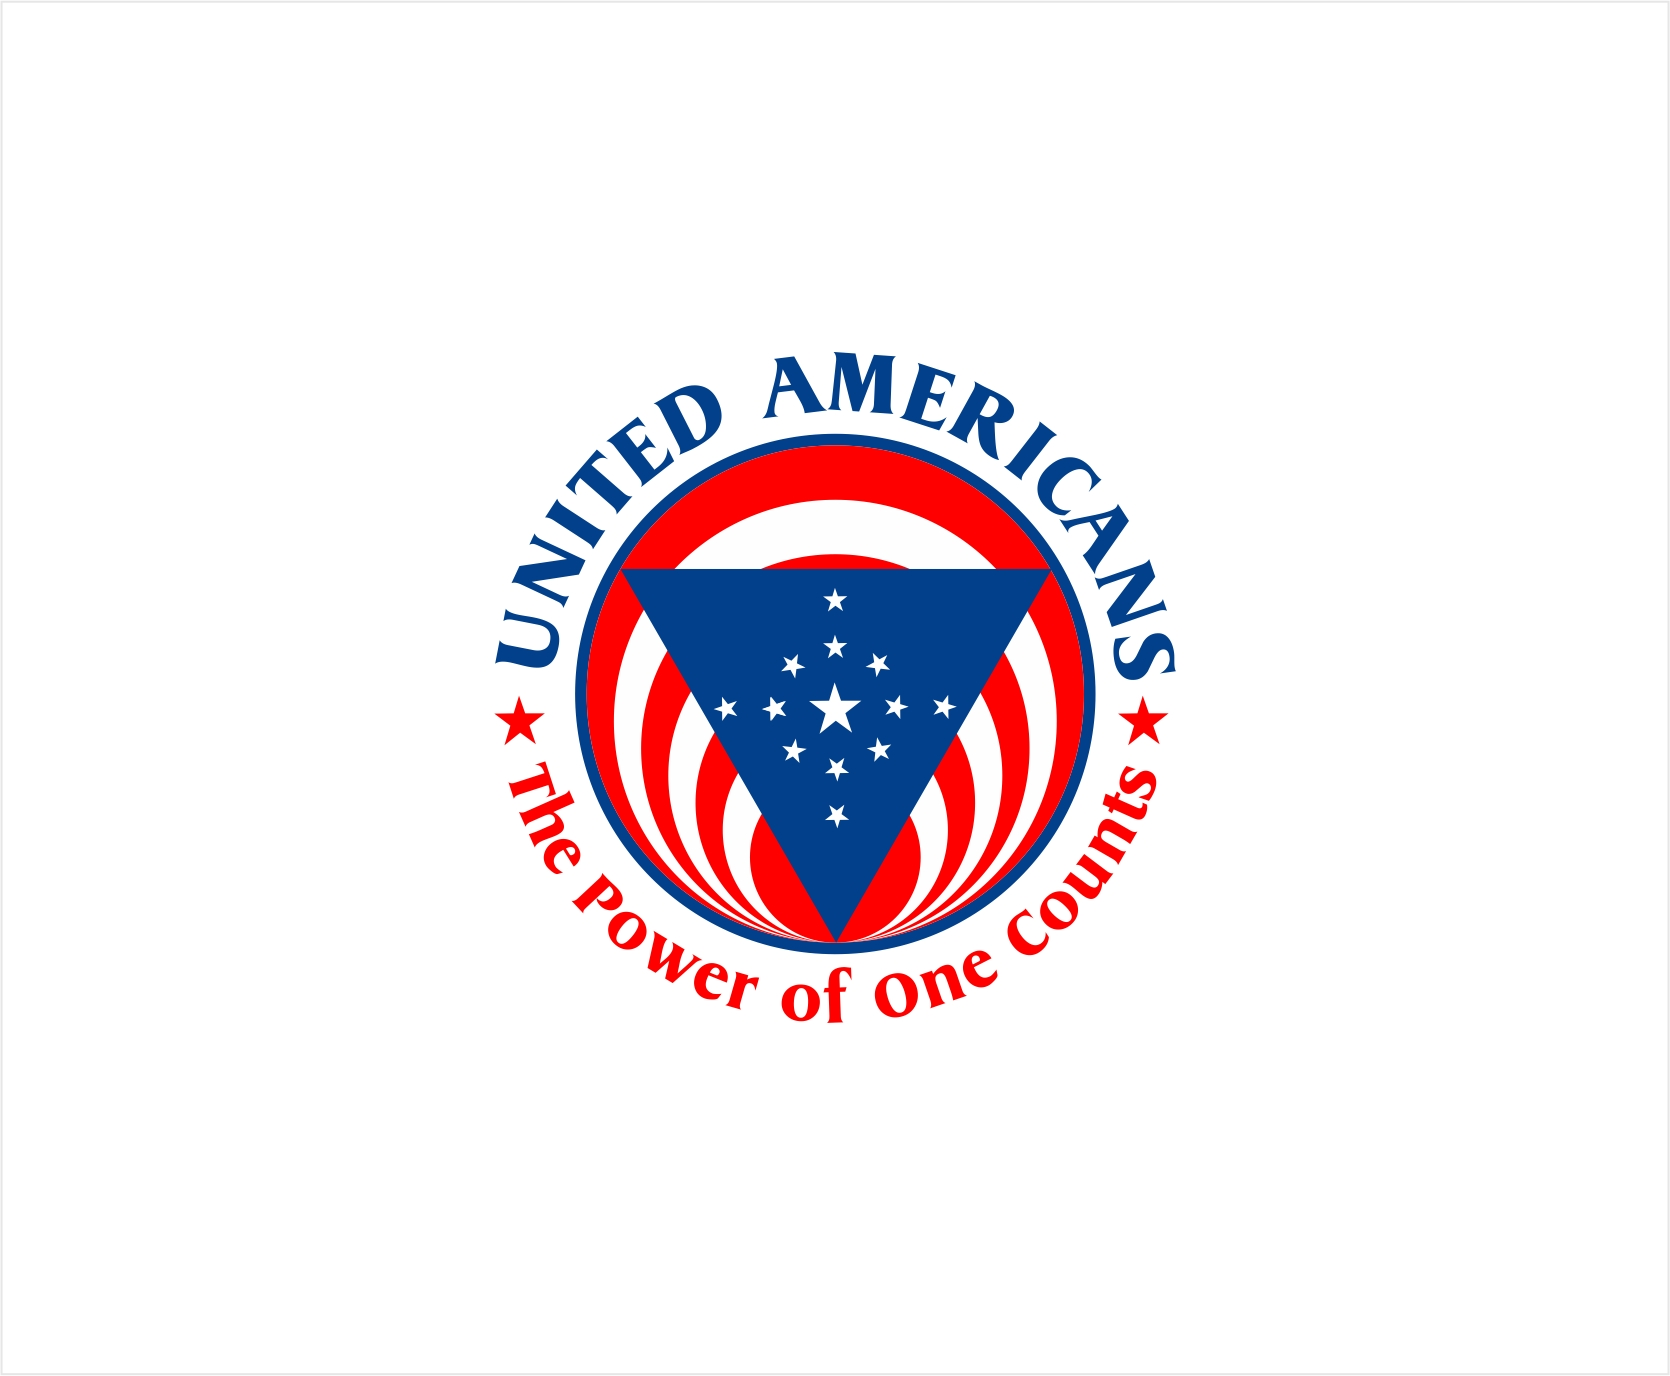 Logo Design by haidu - Entry No. 71 in the Logo Design Contest Creative Logo Design for United Americans.